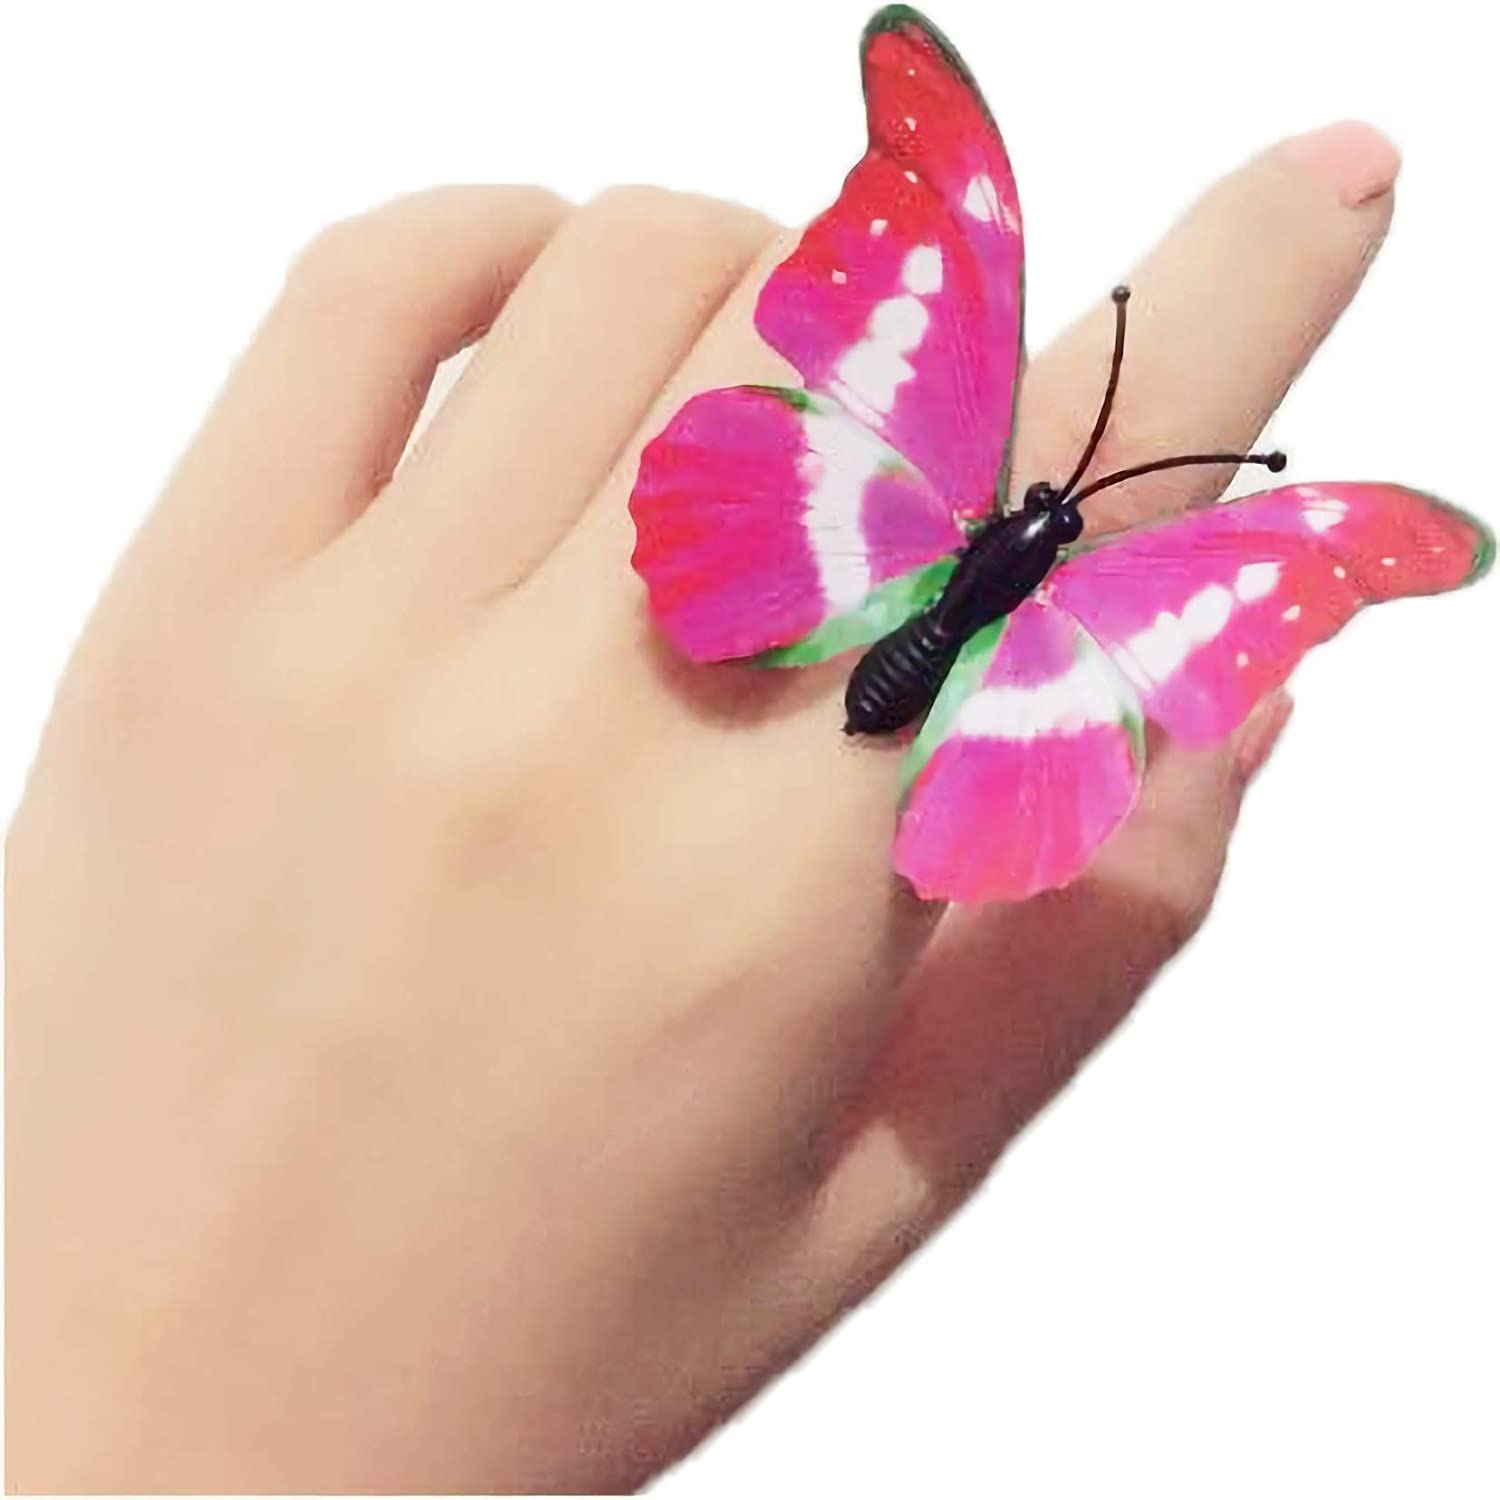 Childrens Jewelry Set No Repeating Colors Girl Pretend Play and Dress up Rings Little Girls Gift Adjustable Colorful Cute Rings for Little Girls Fineder 20PCS Butterfly Rings for Kids